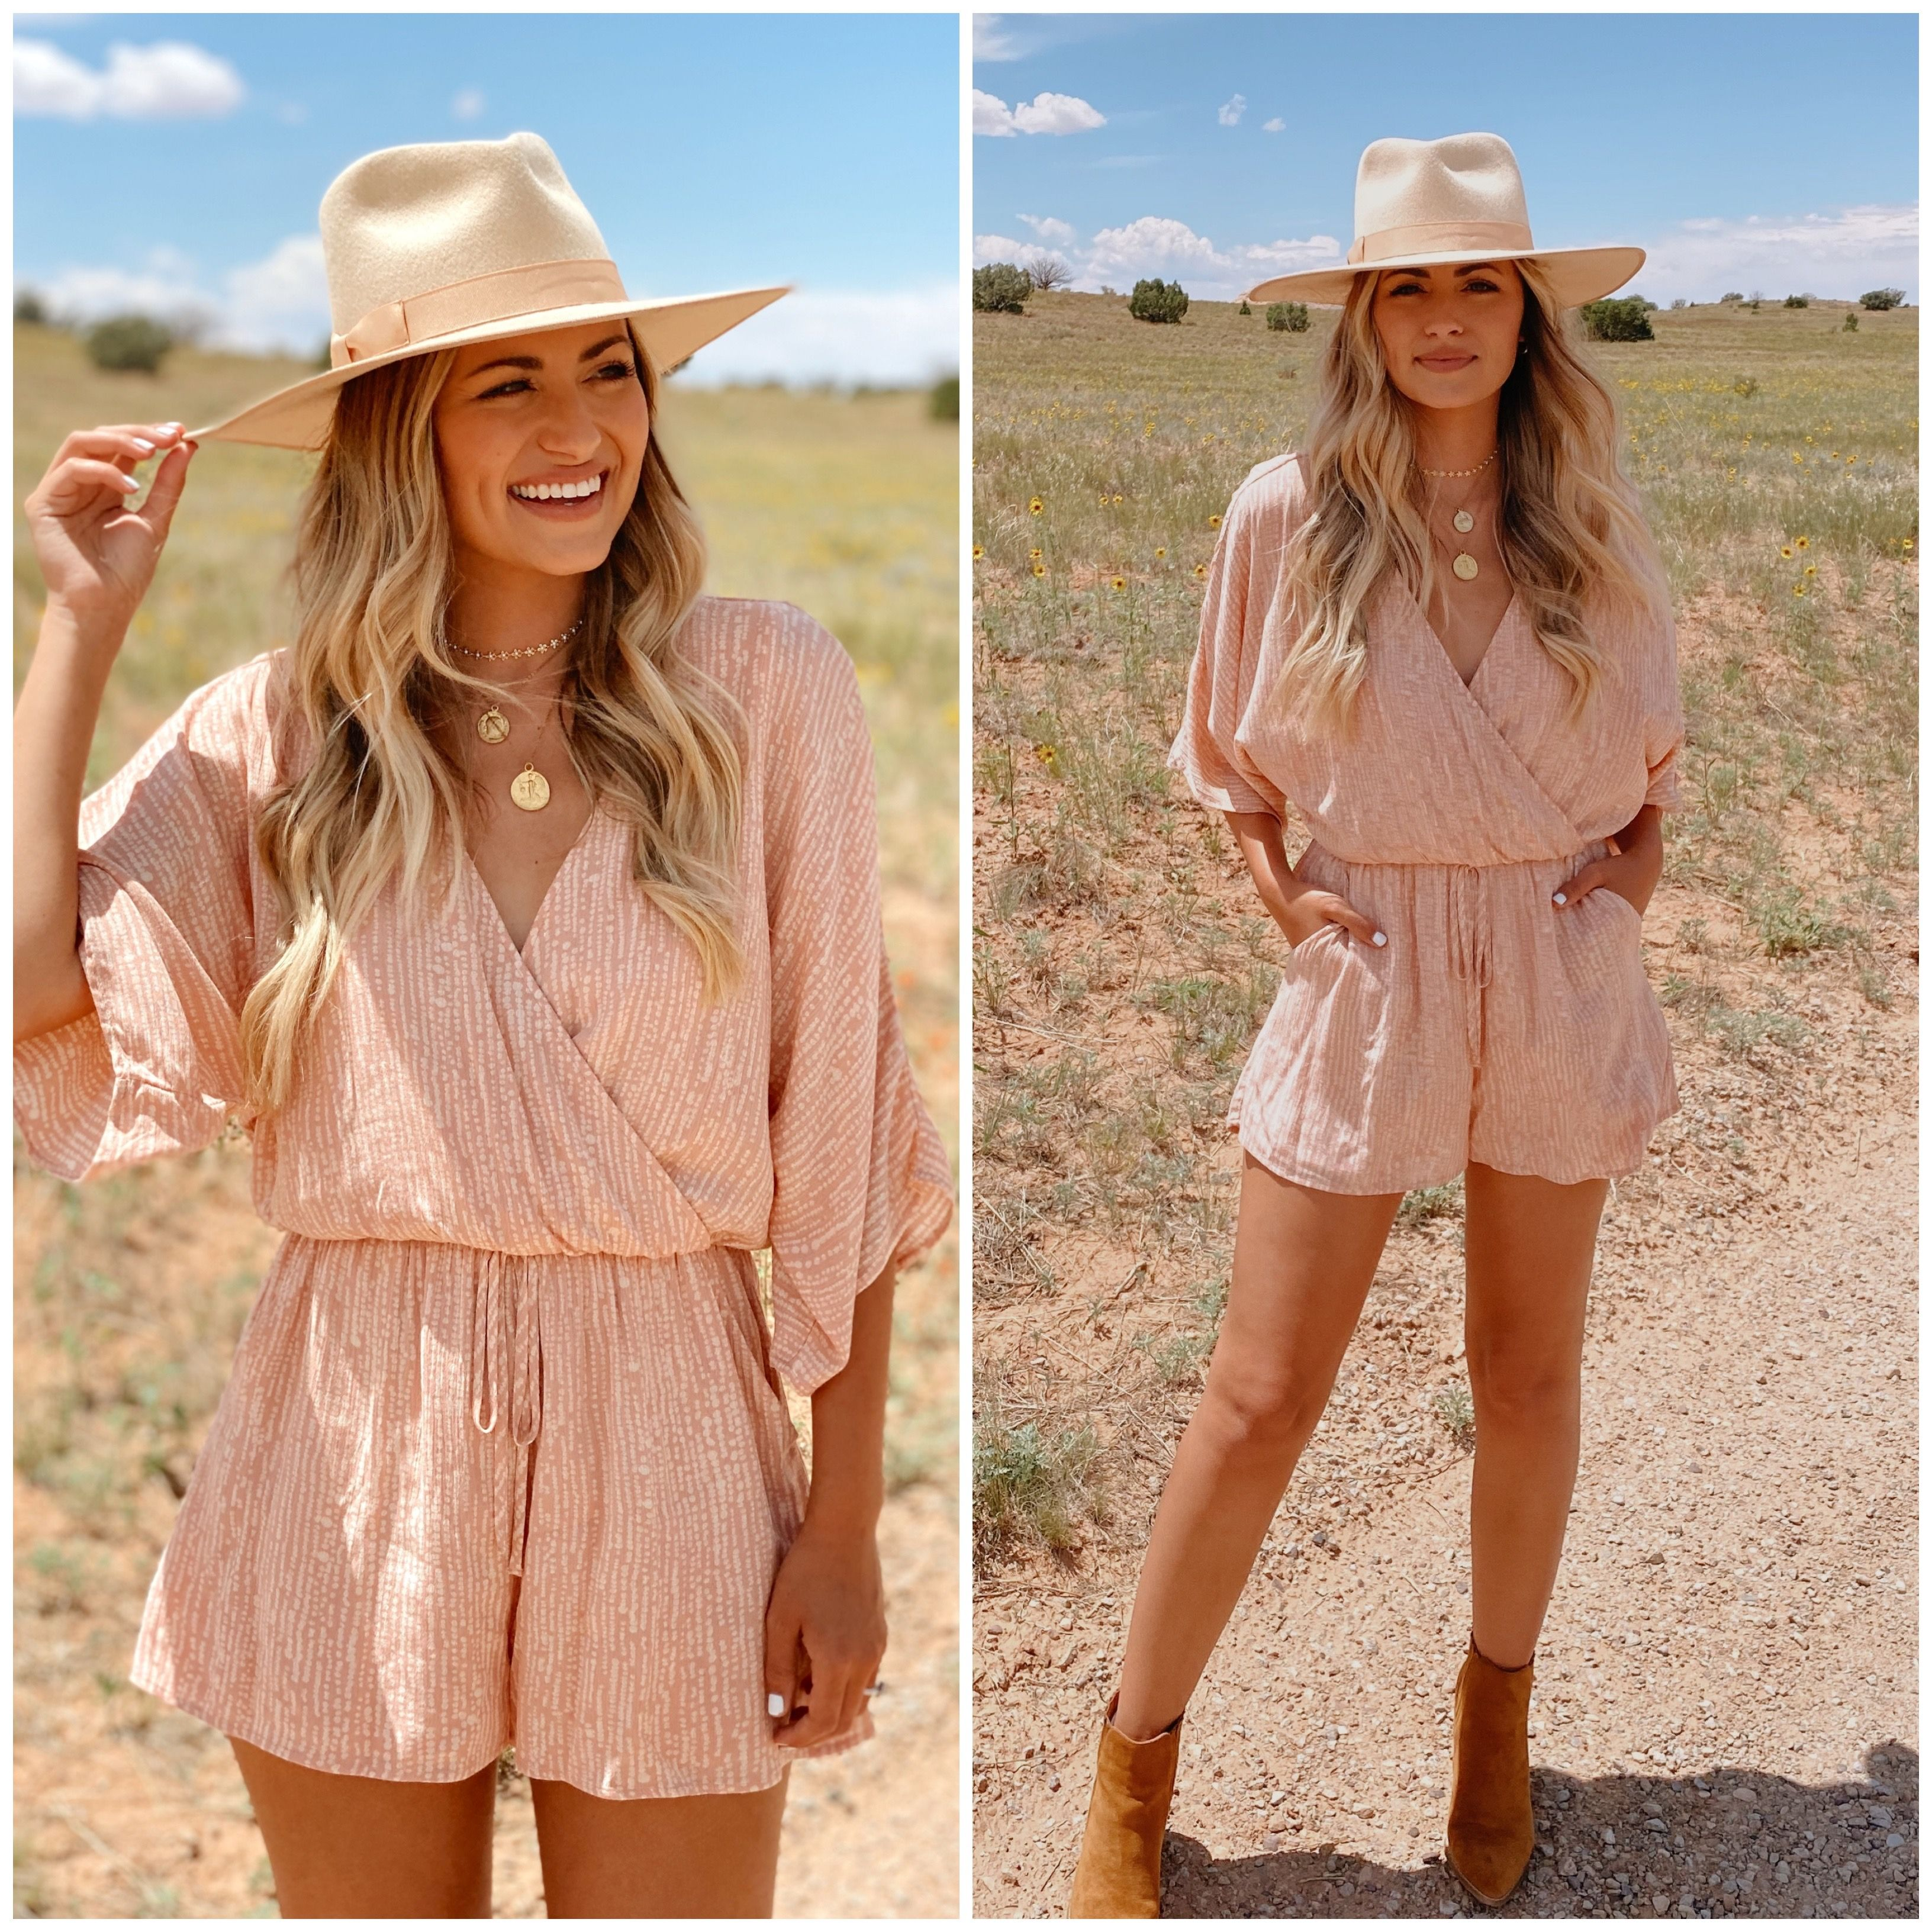 Cute Romper Outfit Girly Outfits Romper Outfit Casual Summer Outfits [ 3264 x 3264 Pixel ]